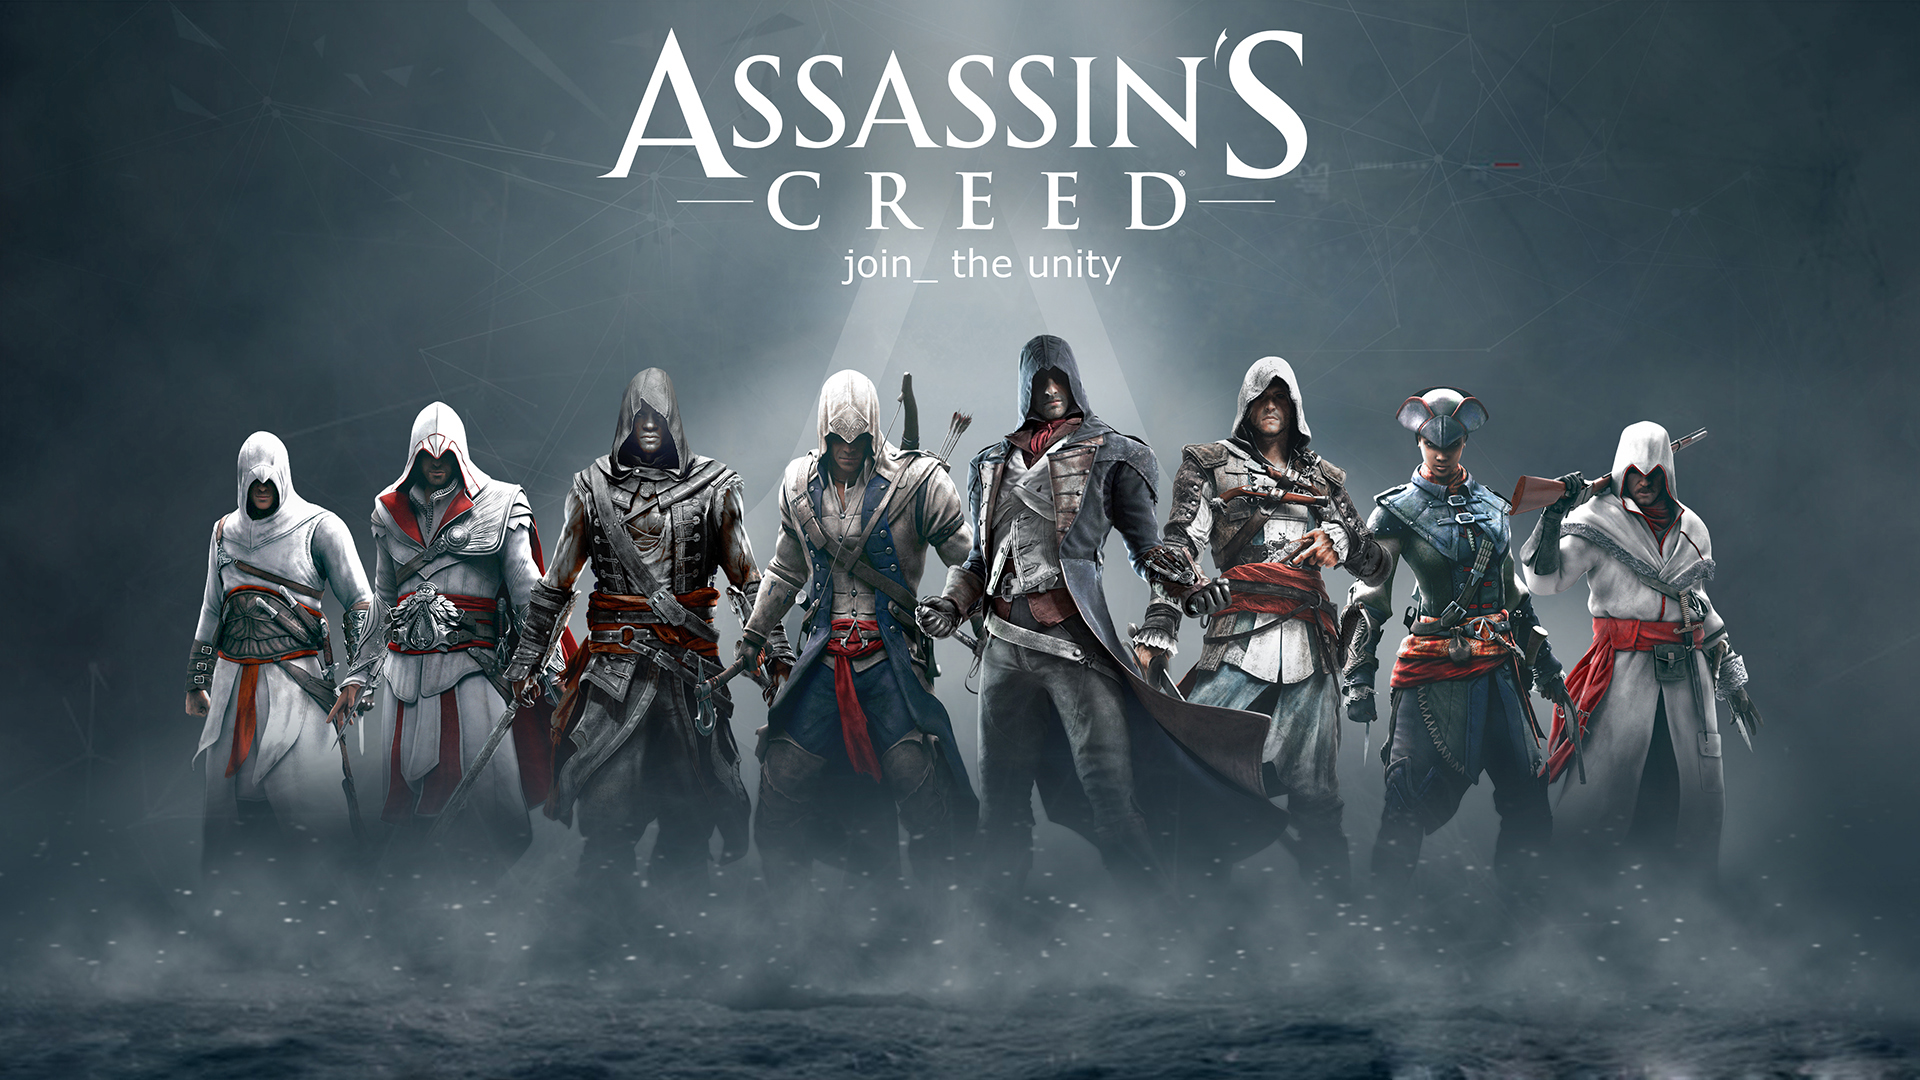 Assassins Creed Wallpaper HD 1920x1080